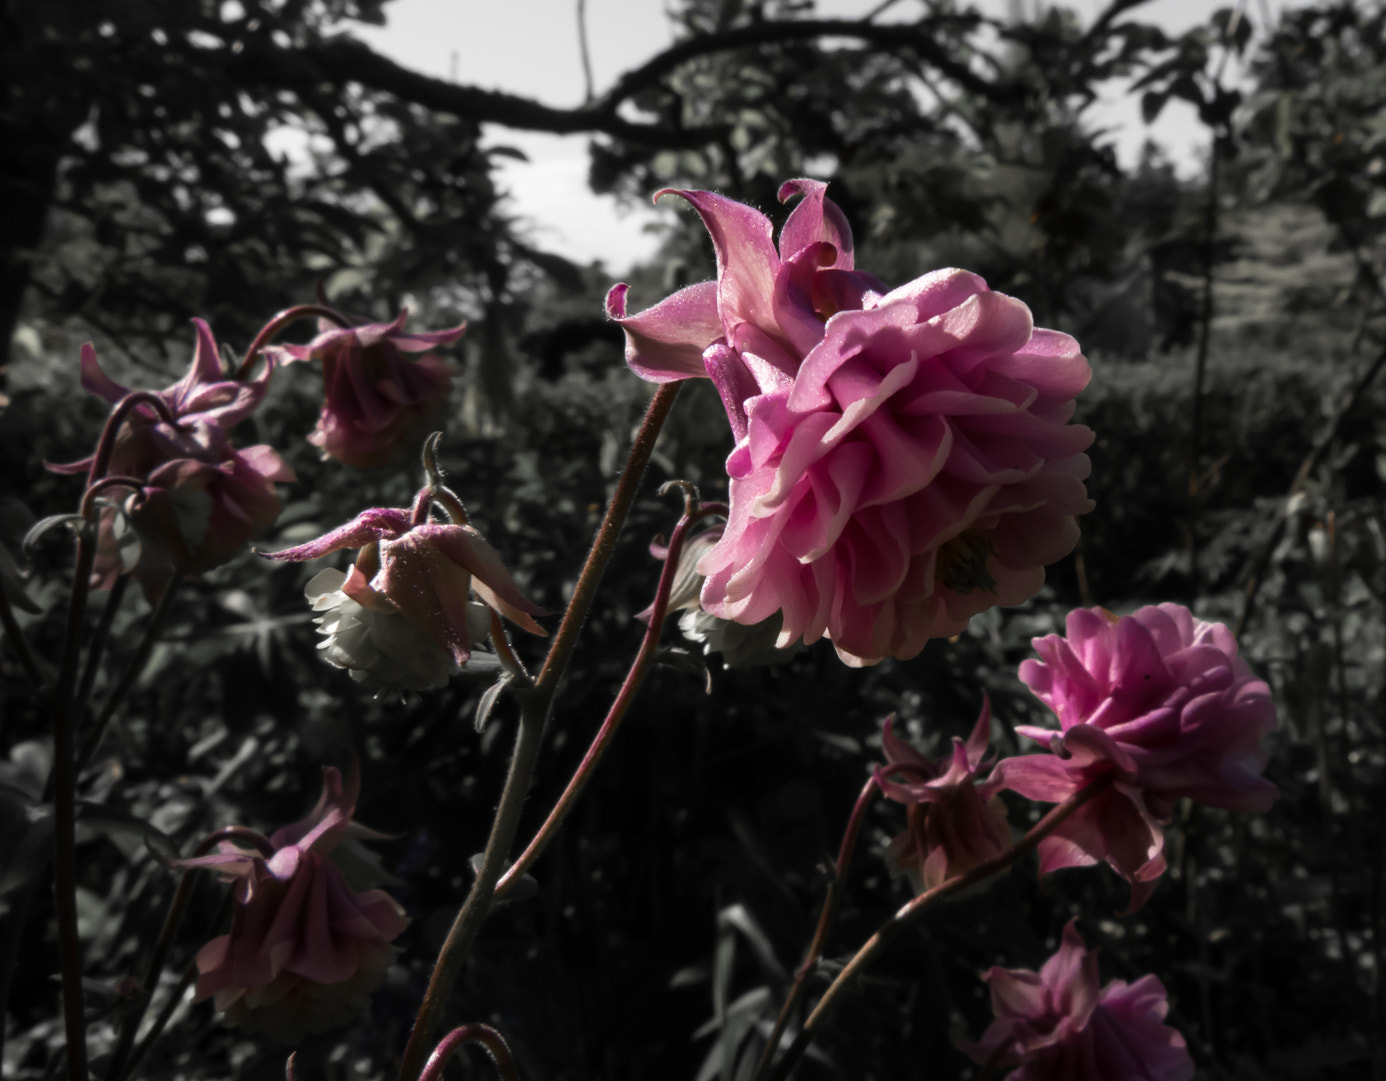 Photograph Pink flowers by Adam Z on 500px